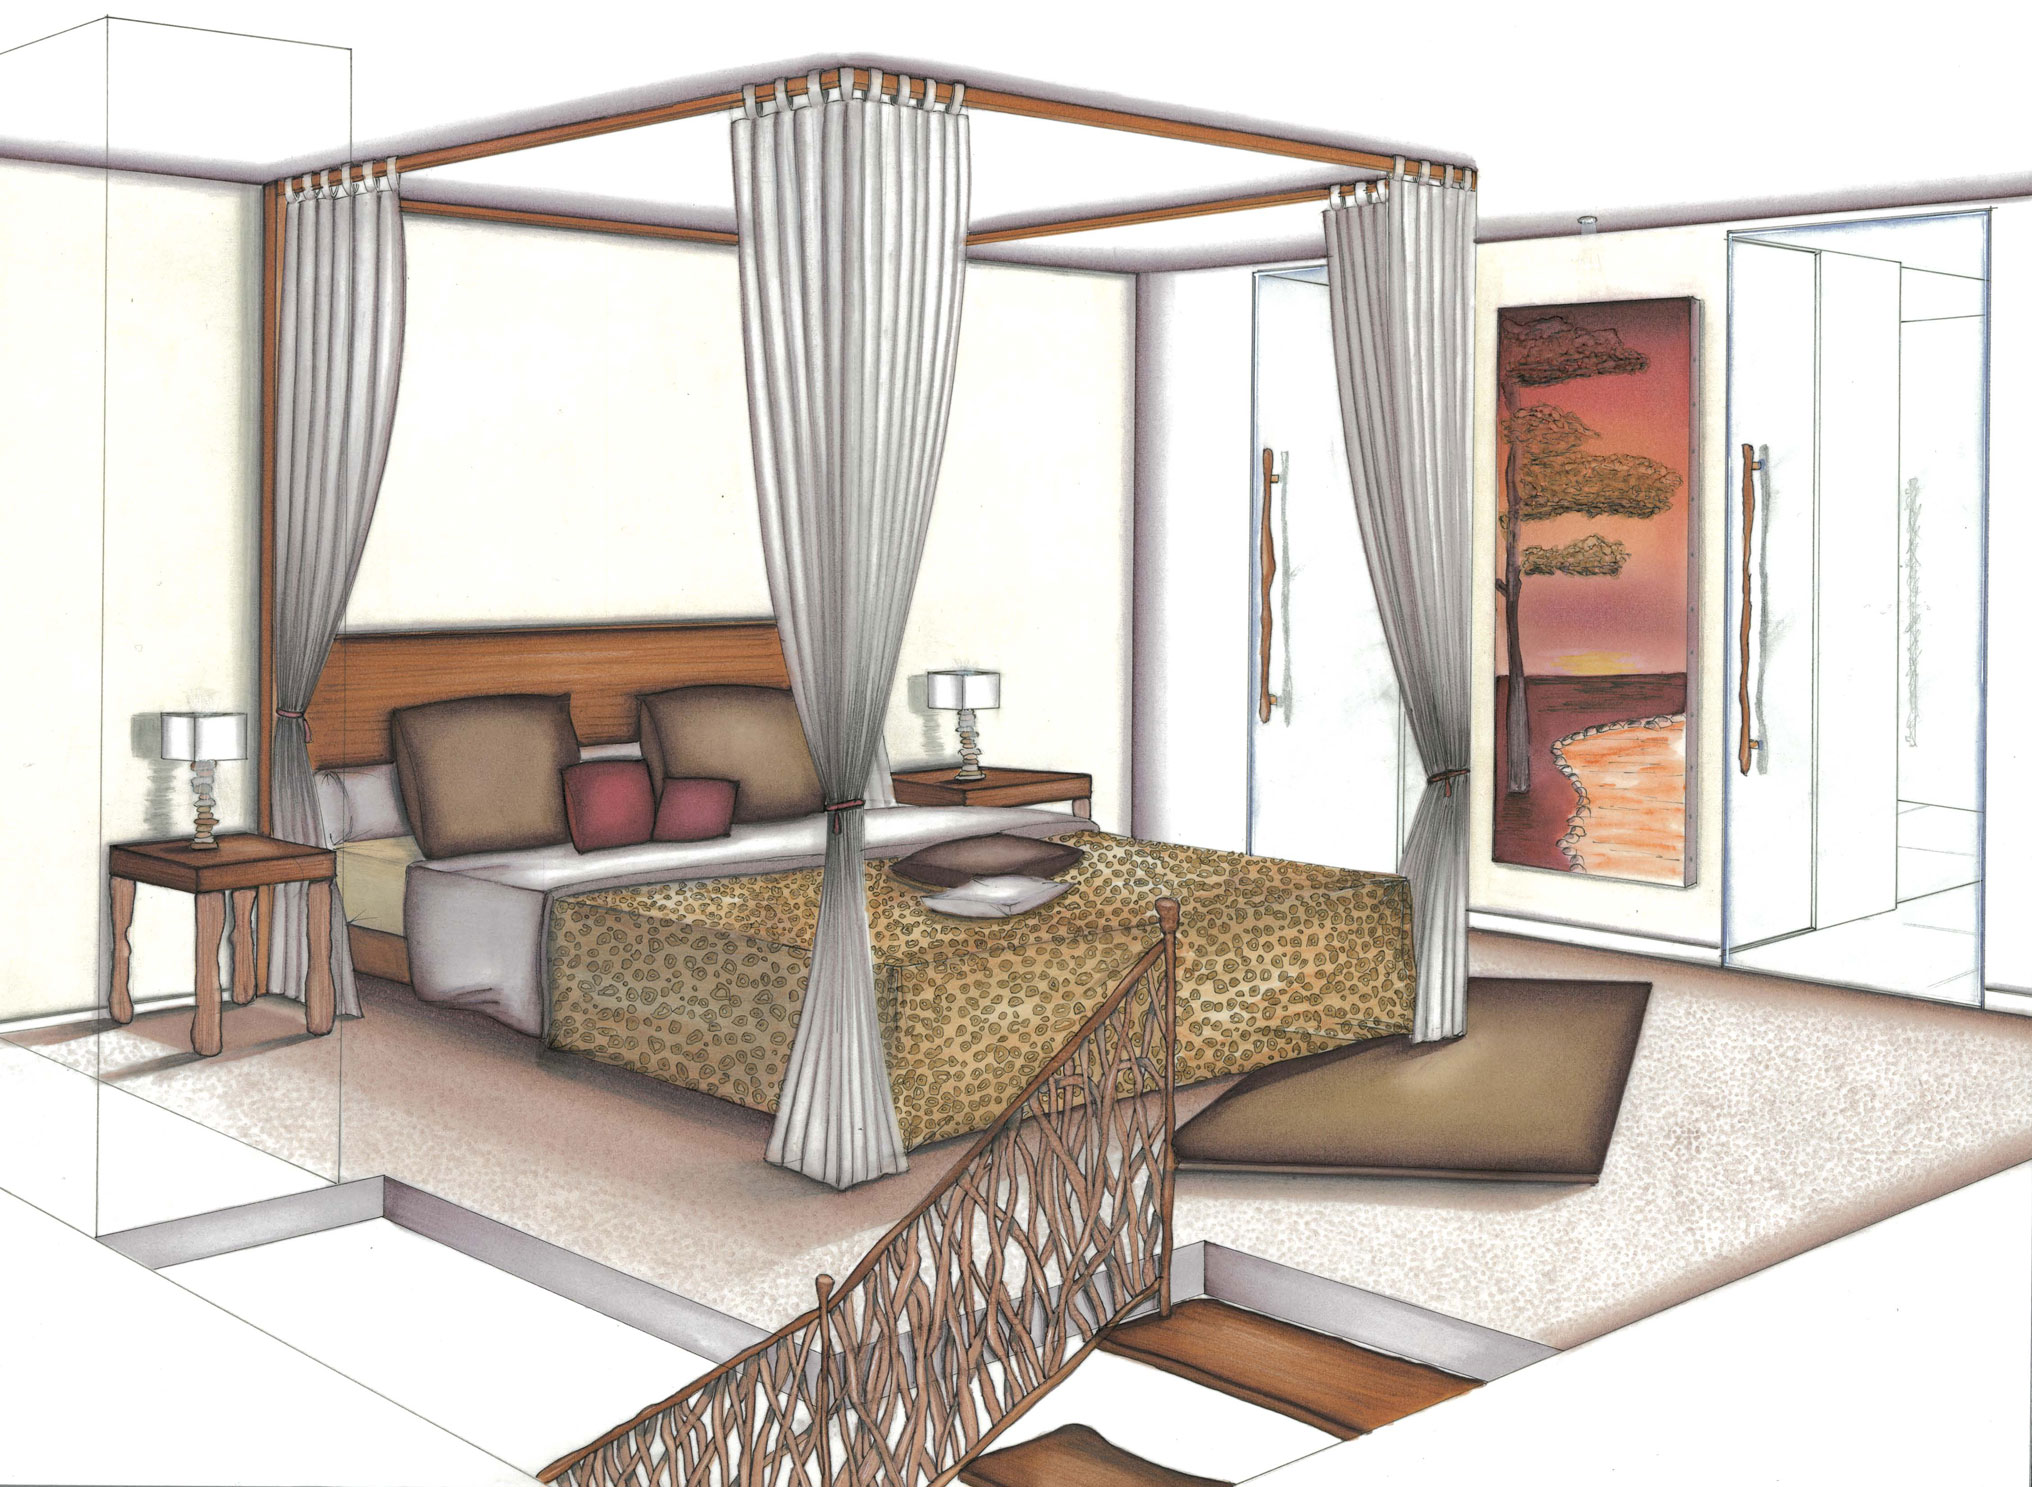 Dessin Chambre En Perspective | 301 Moved Permanently